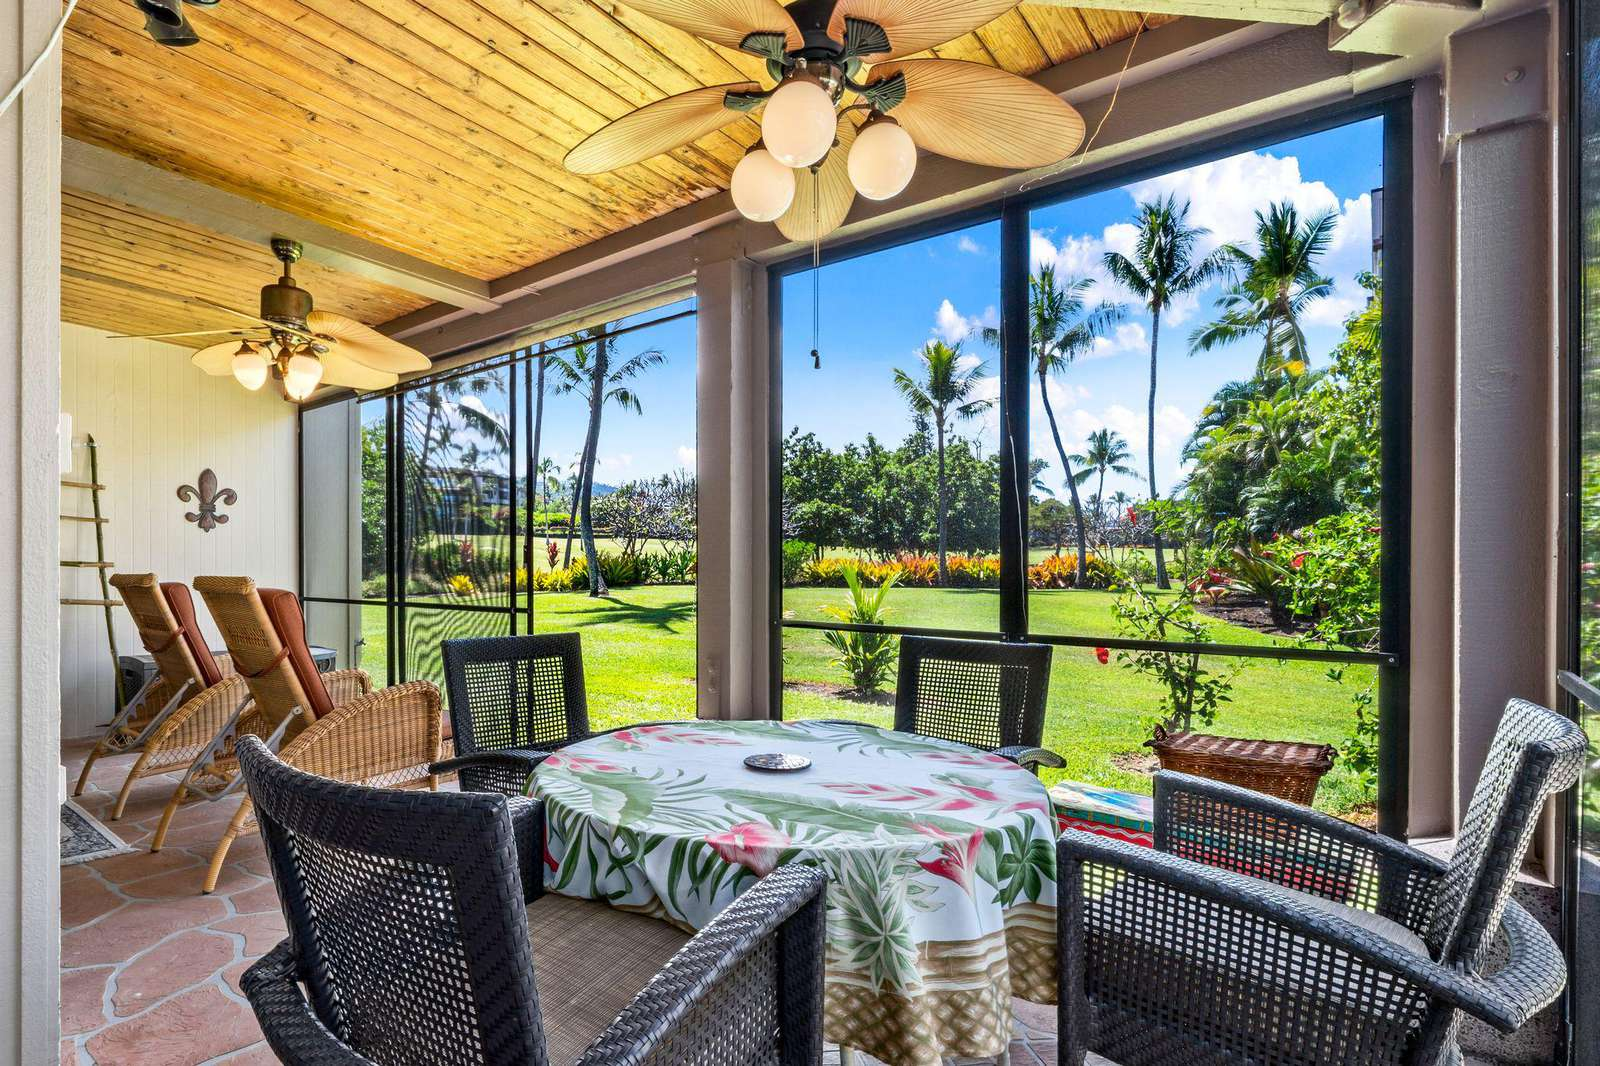 Relax on the cool, shady screened in lanai.